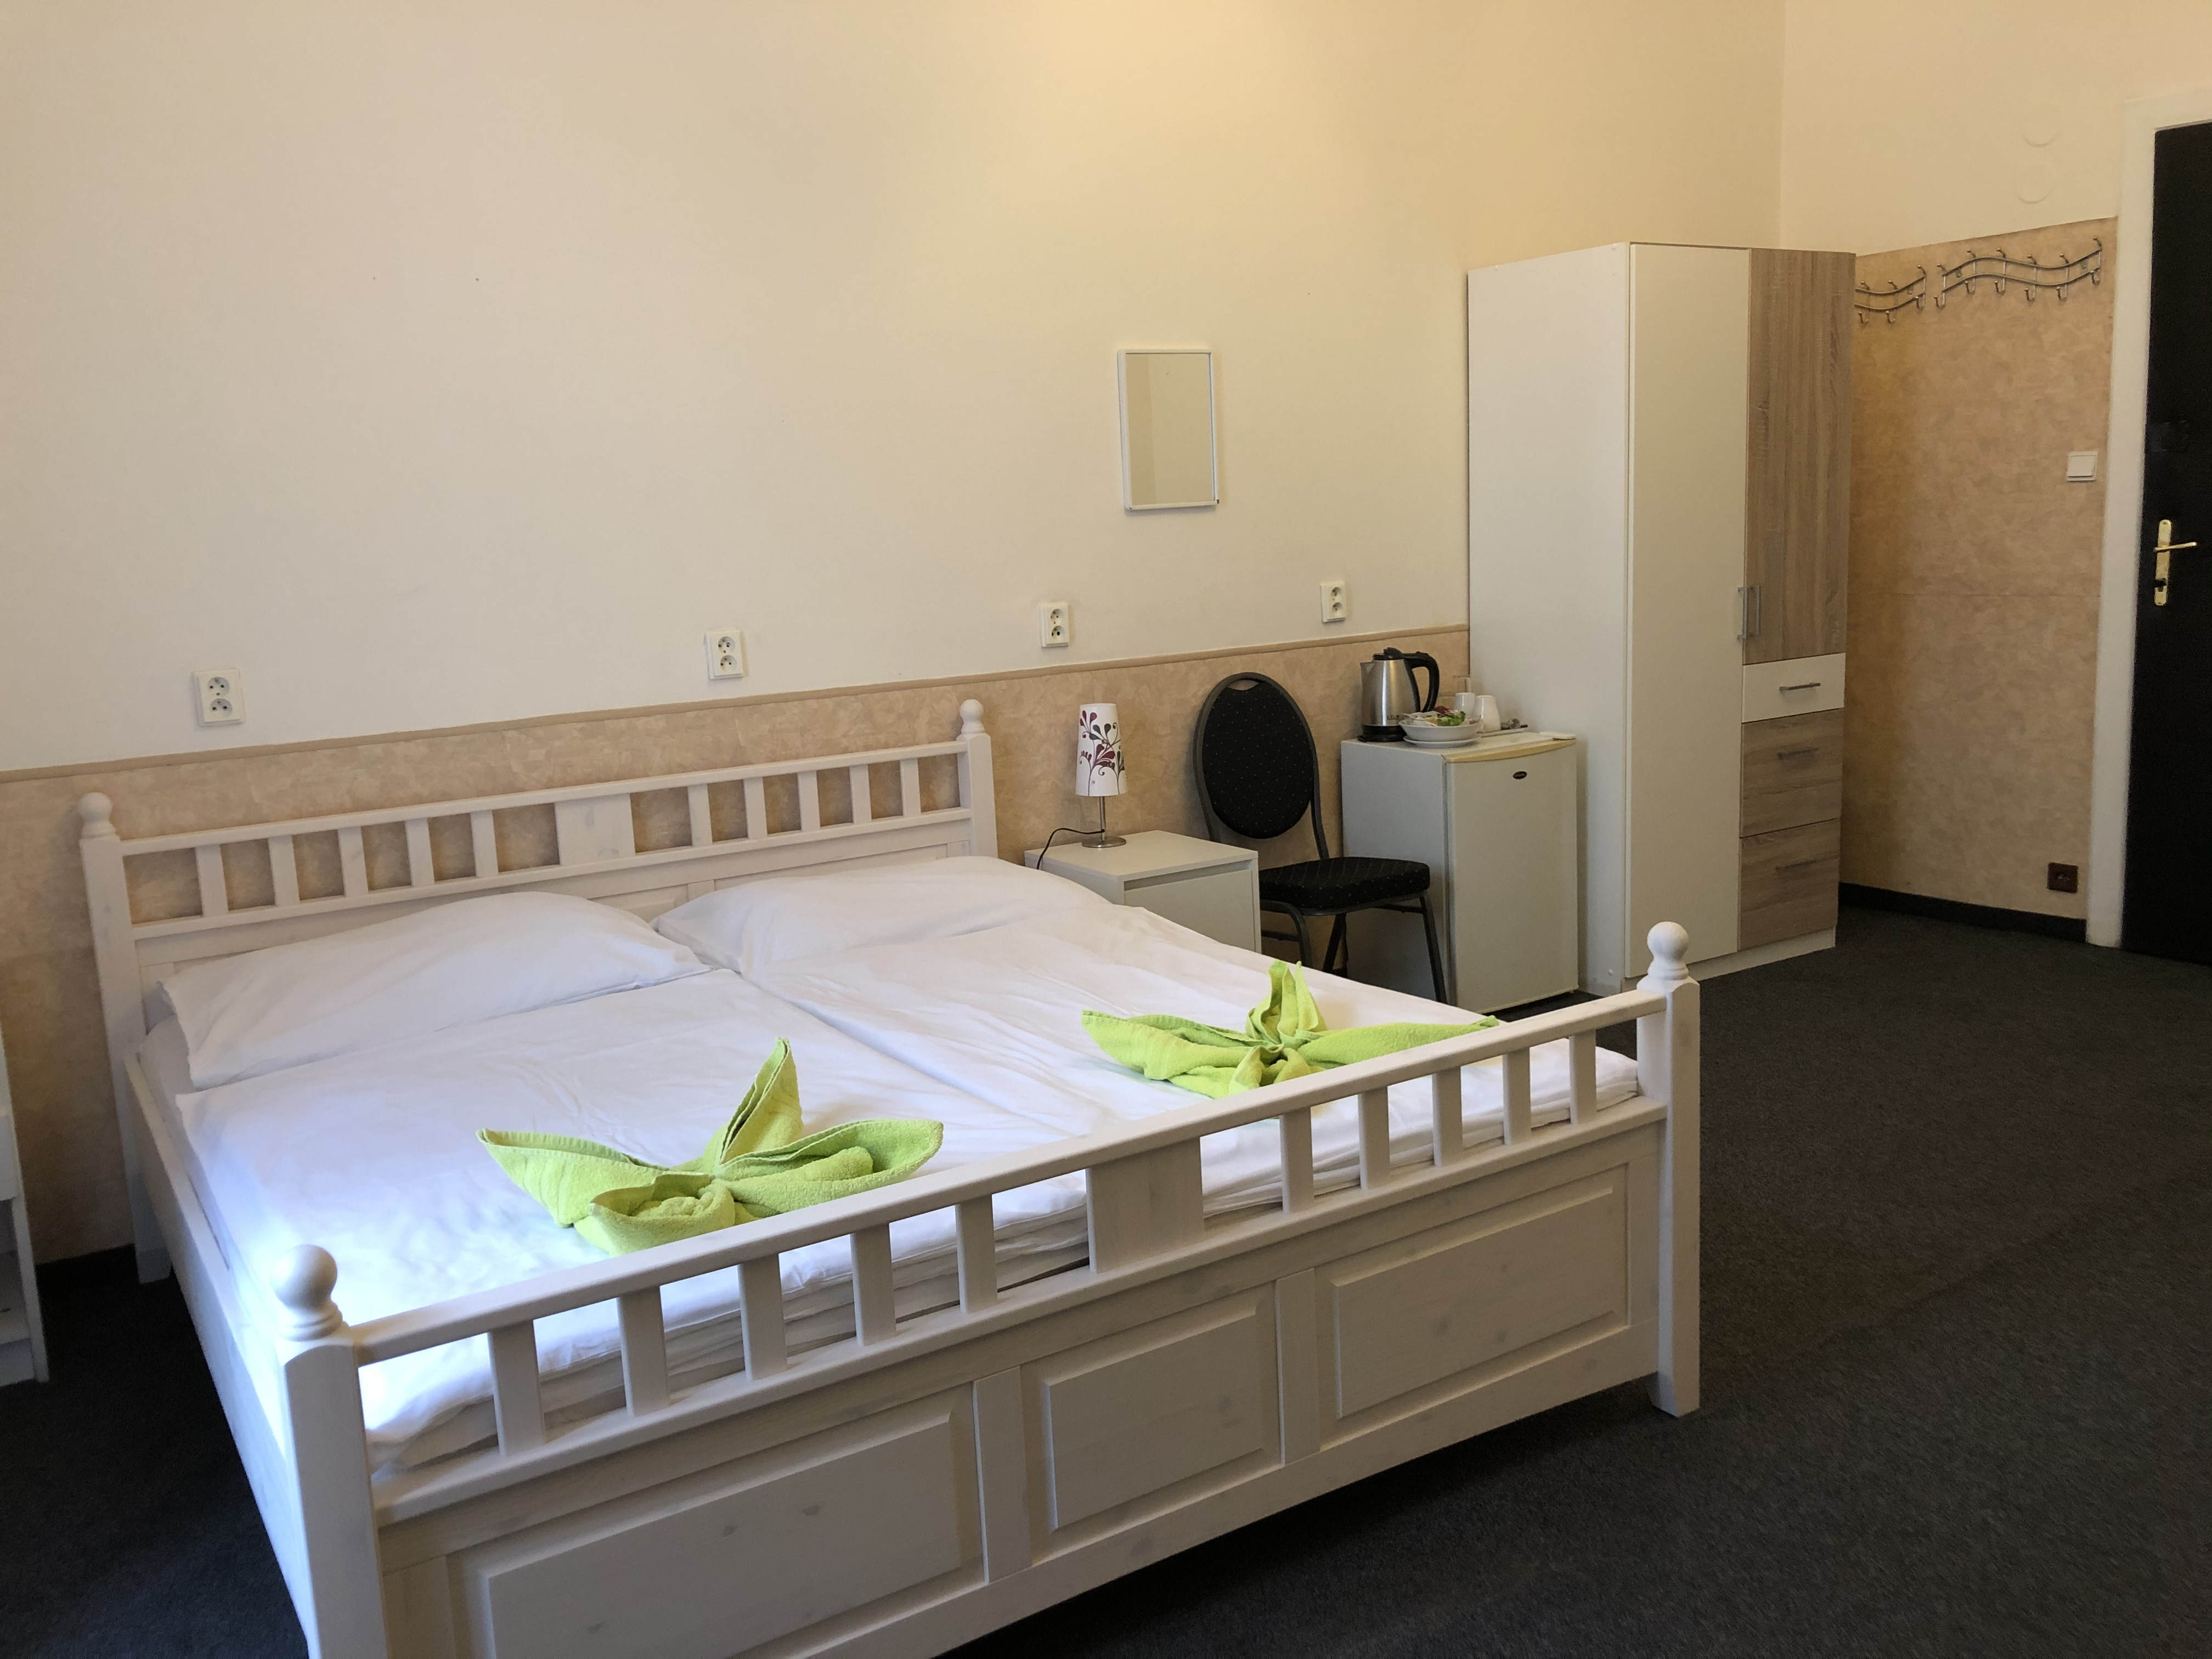 A double-bed room with shared bathroom